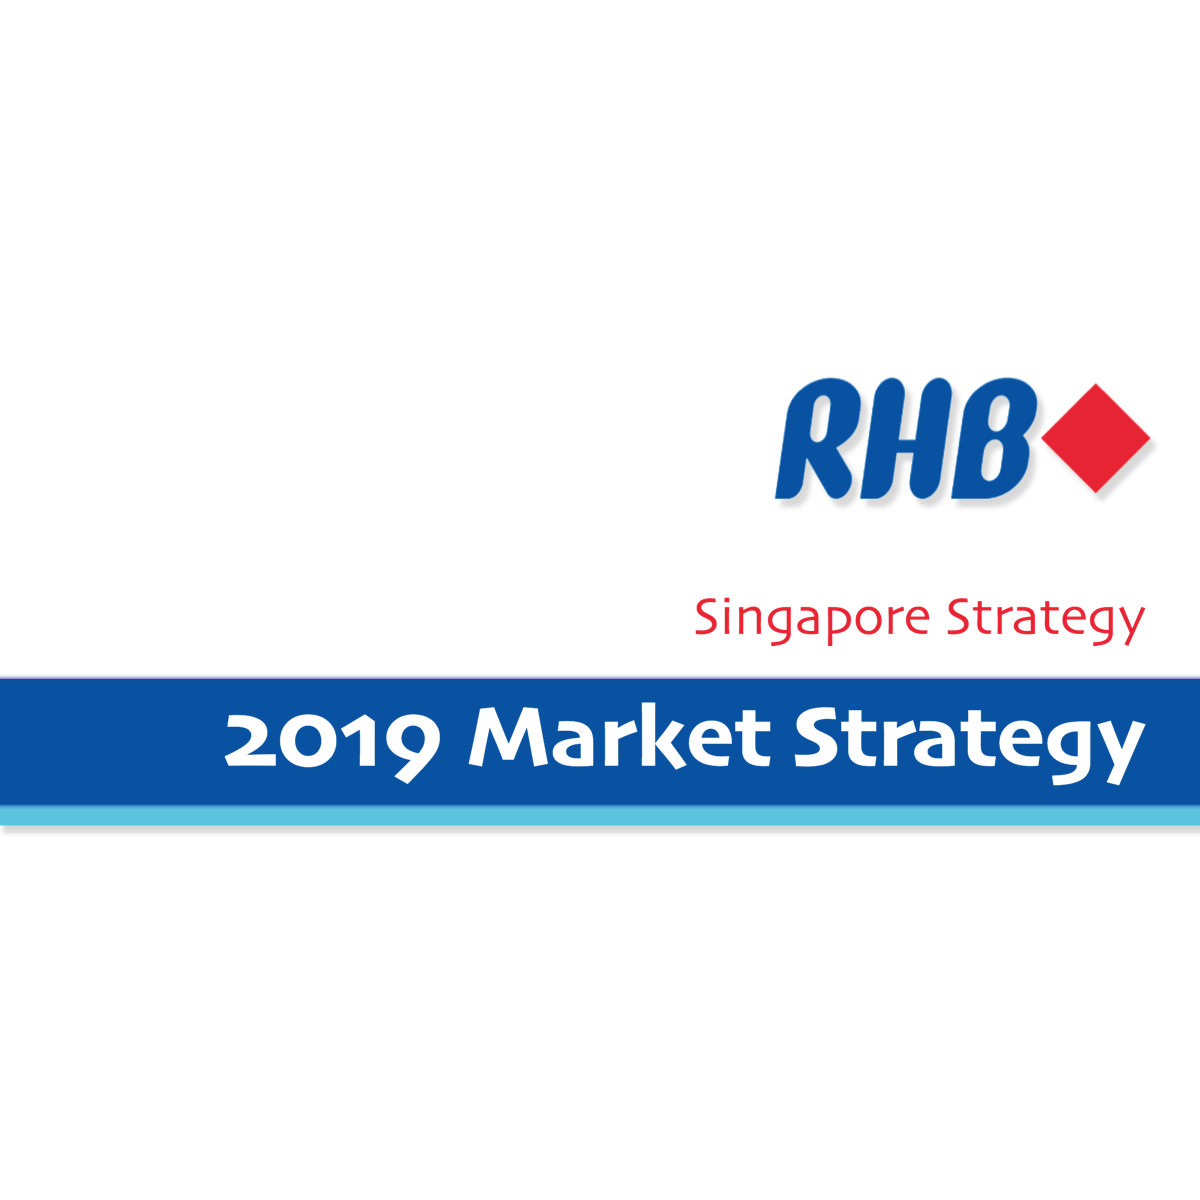 Singapore Strategy 2019 - RHB Investment Research | SGinvestors.io